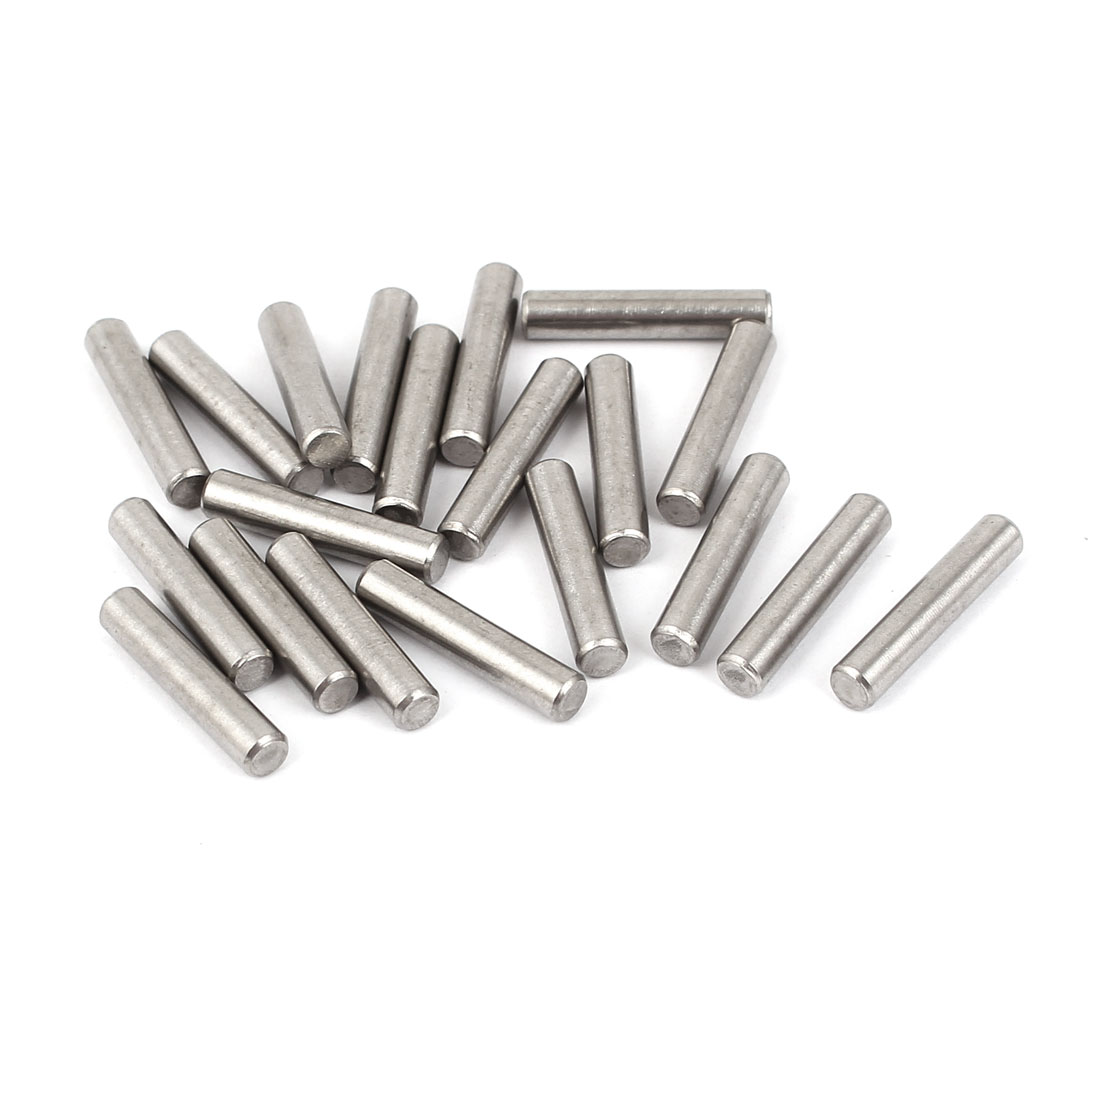 M4x20mm Stainless Steel Parallel Dowel Pins Fastener Elements 20pcs